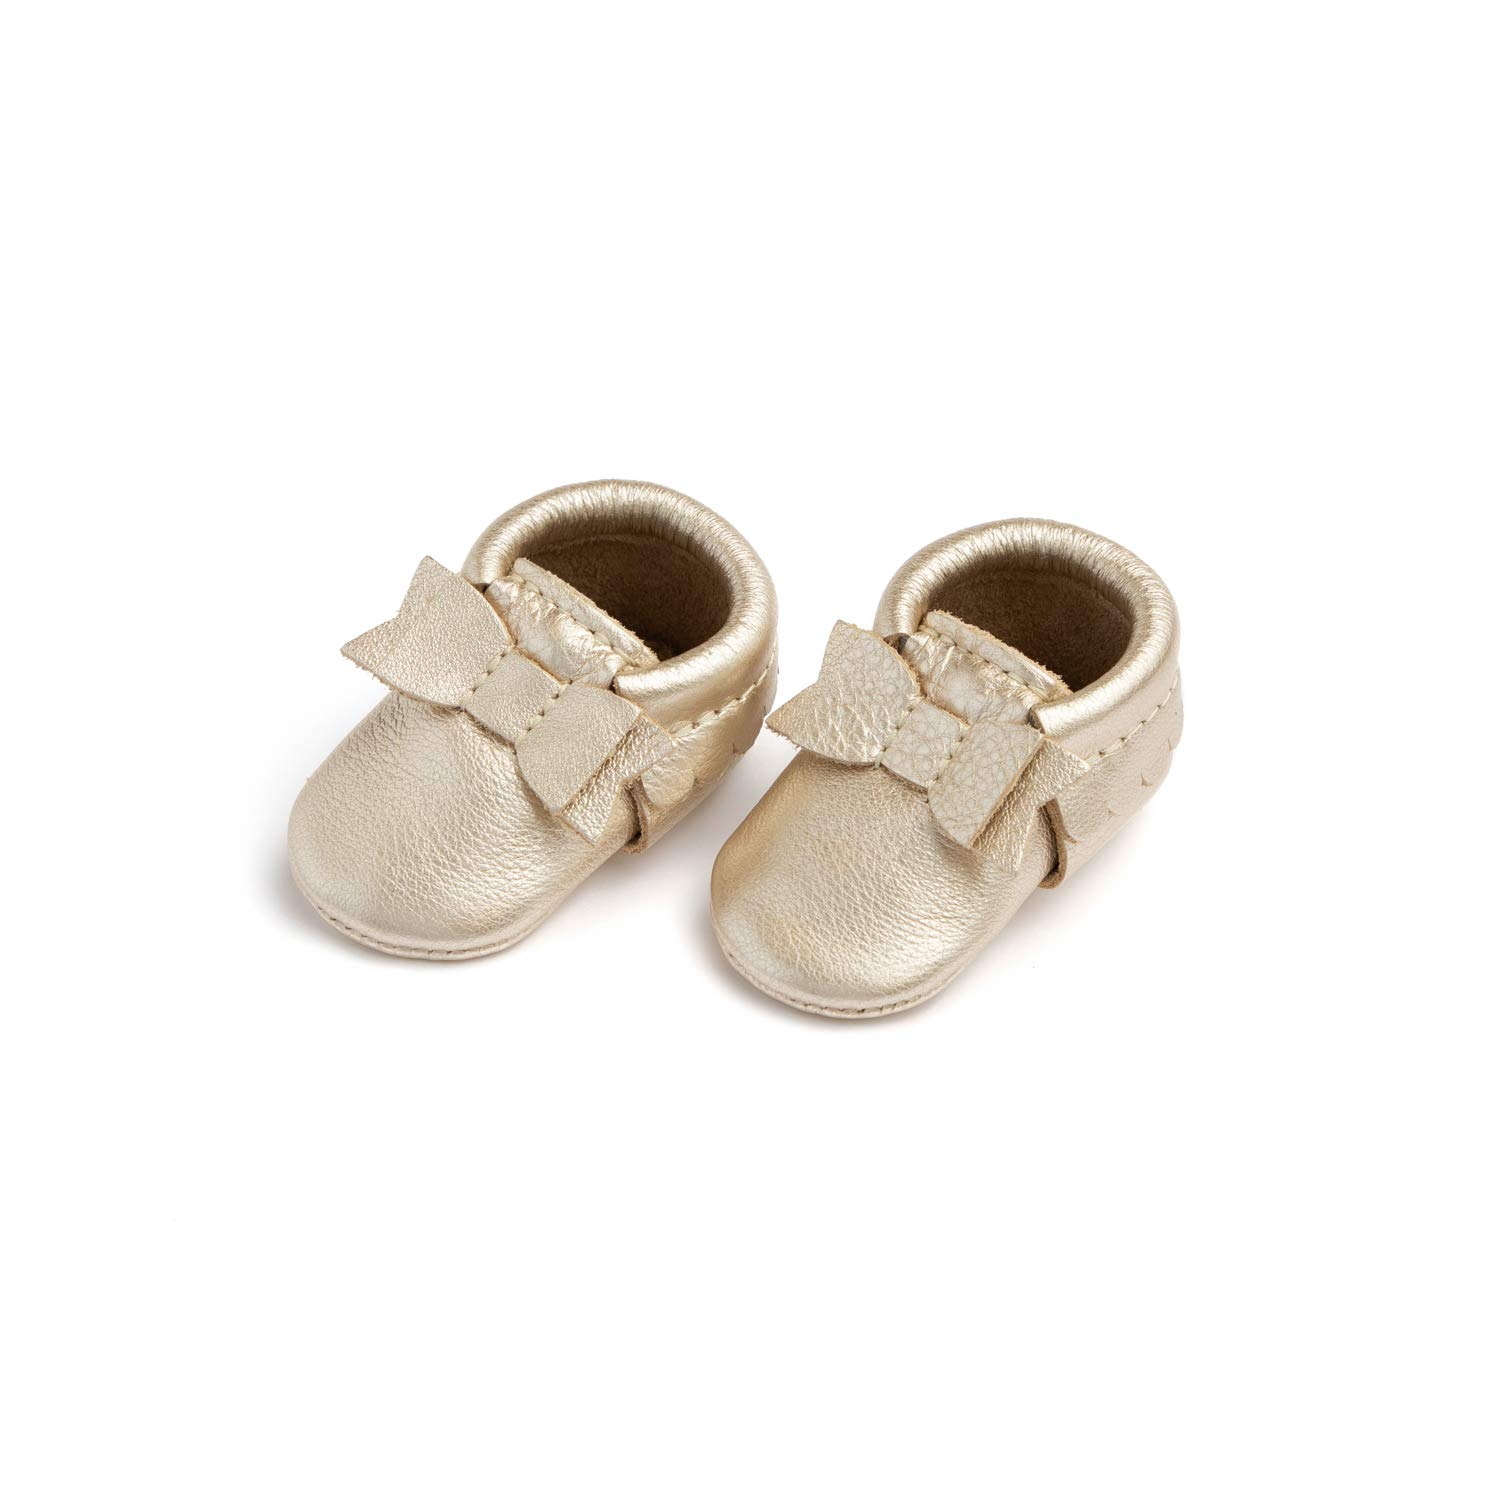 Freshly Picked - Soft Sole Leather Bow Moccasins - Newborn Baby Girl Shoes - Size 0 Platinum Gold by Freshly Picked